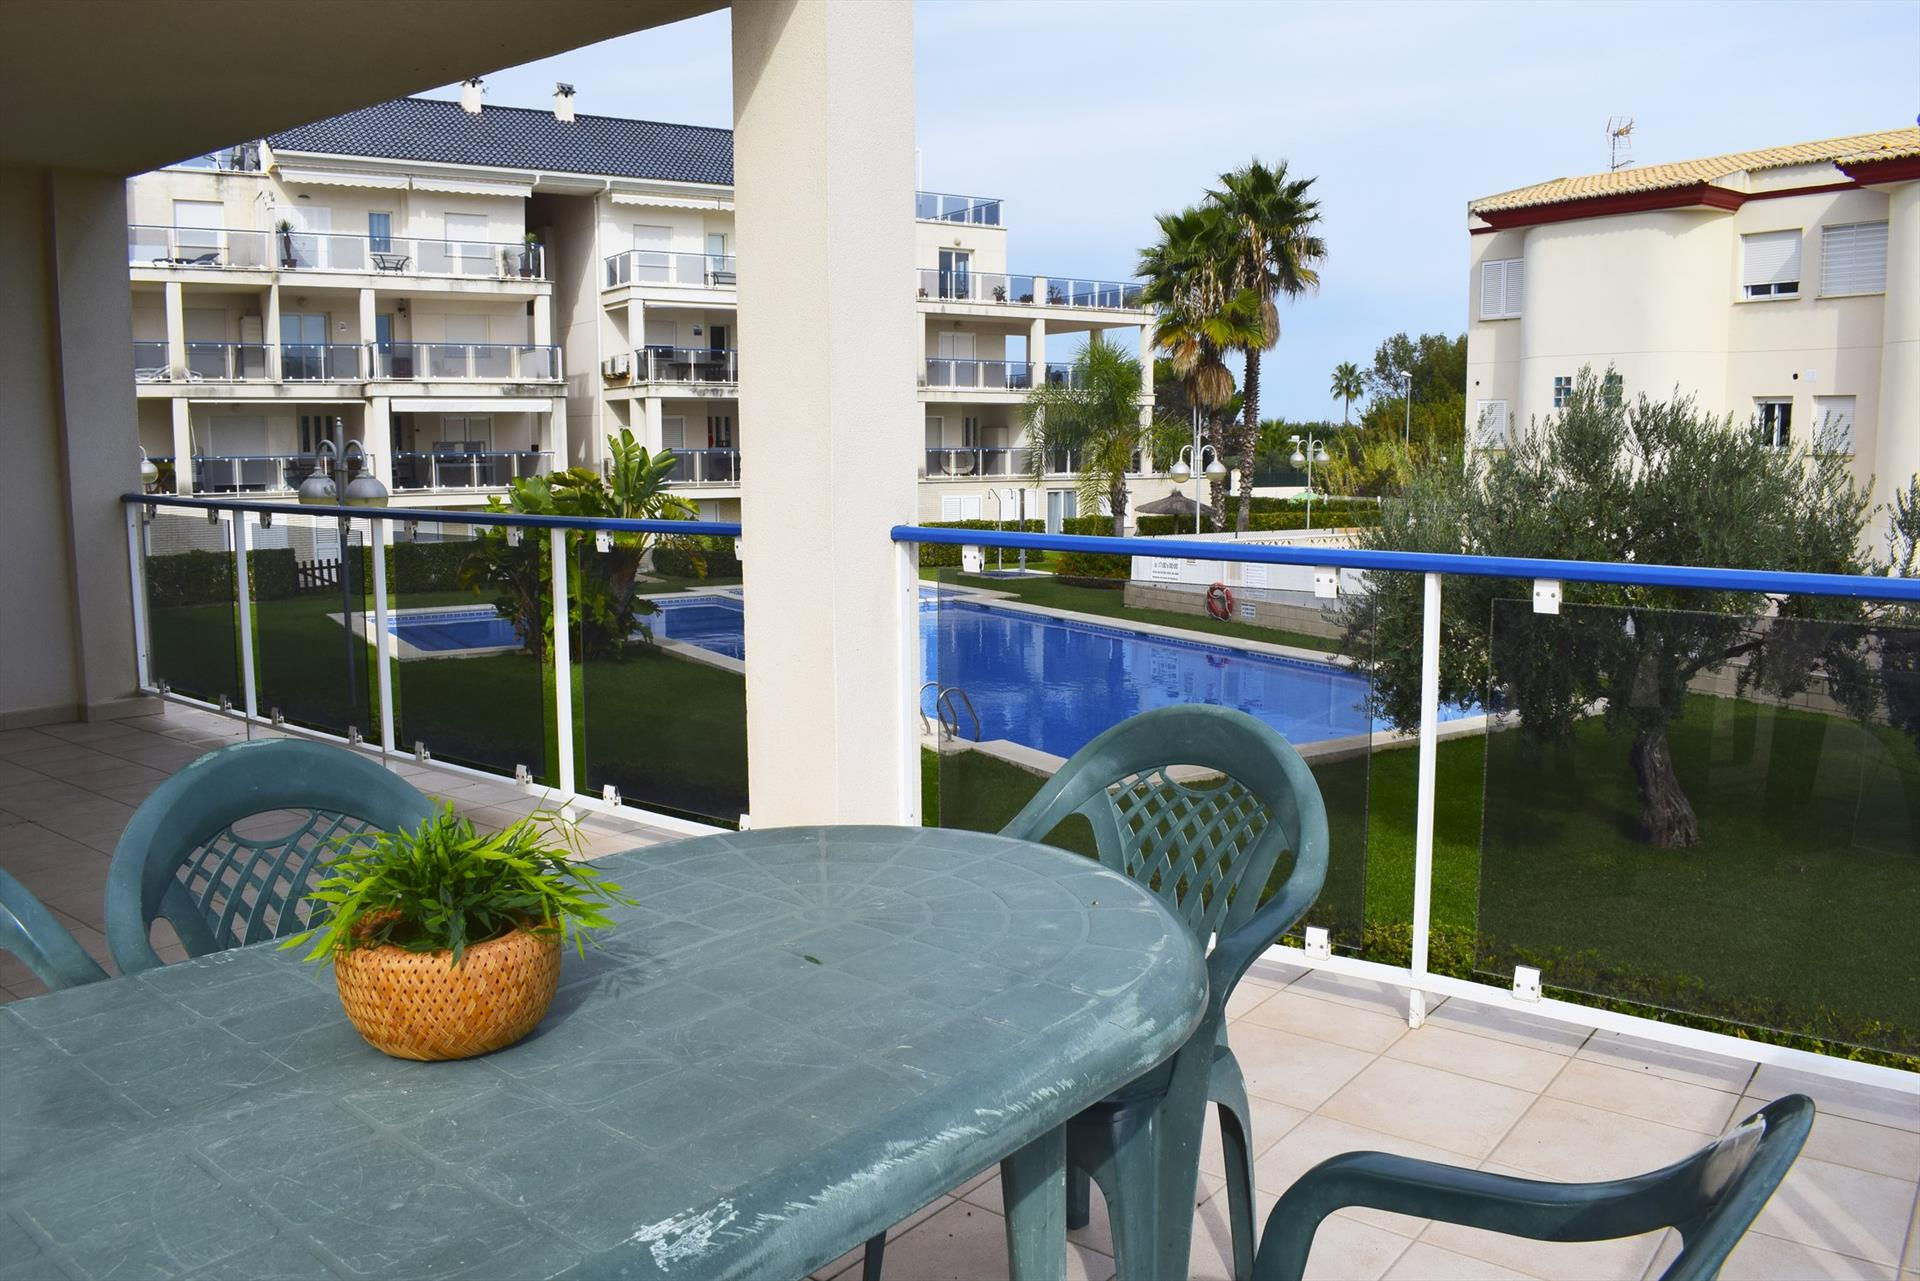 DUP3014 Vora Golf II Rabdells, Beautiful and comfortable apartment  with communal pool in Oliva, on the Costa Blanca, Spain for 6 persons.....